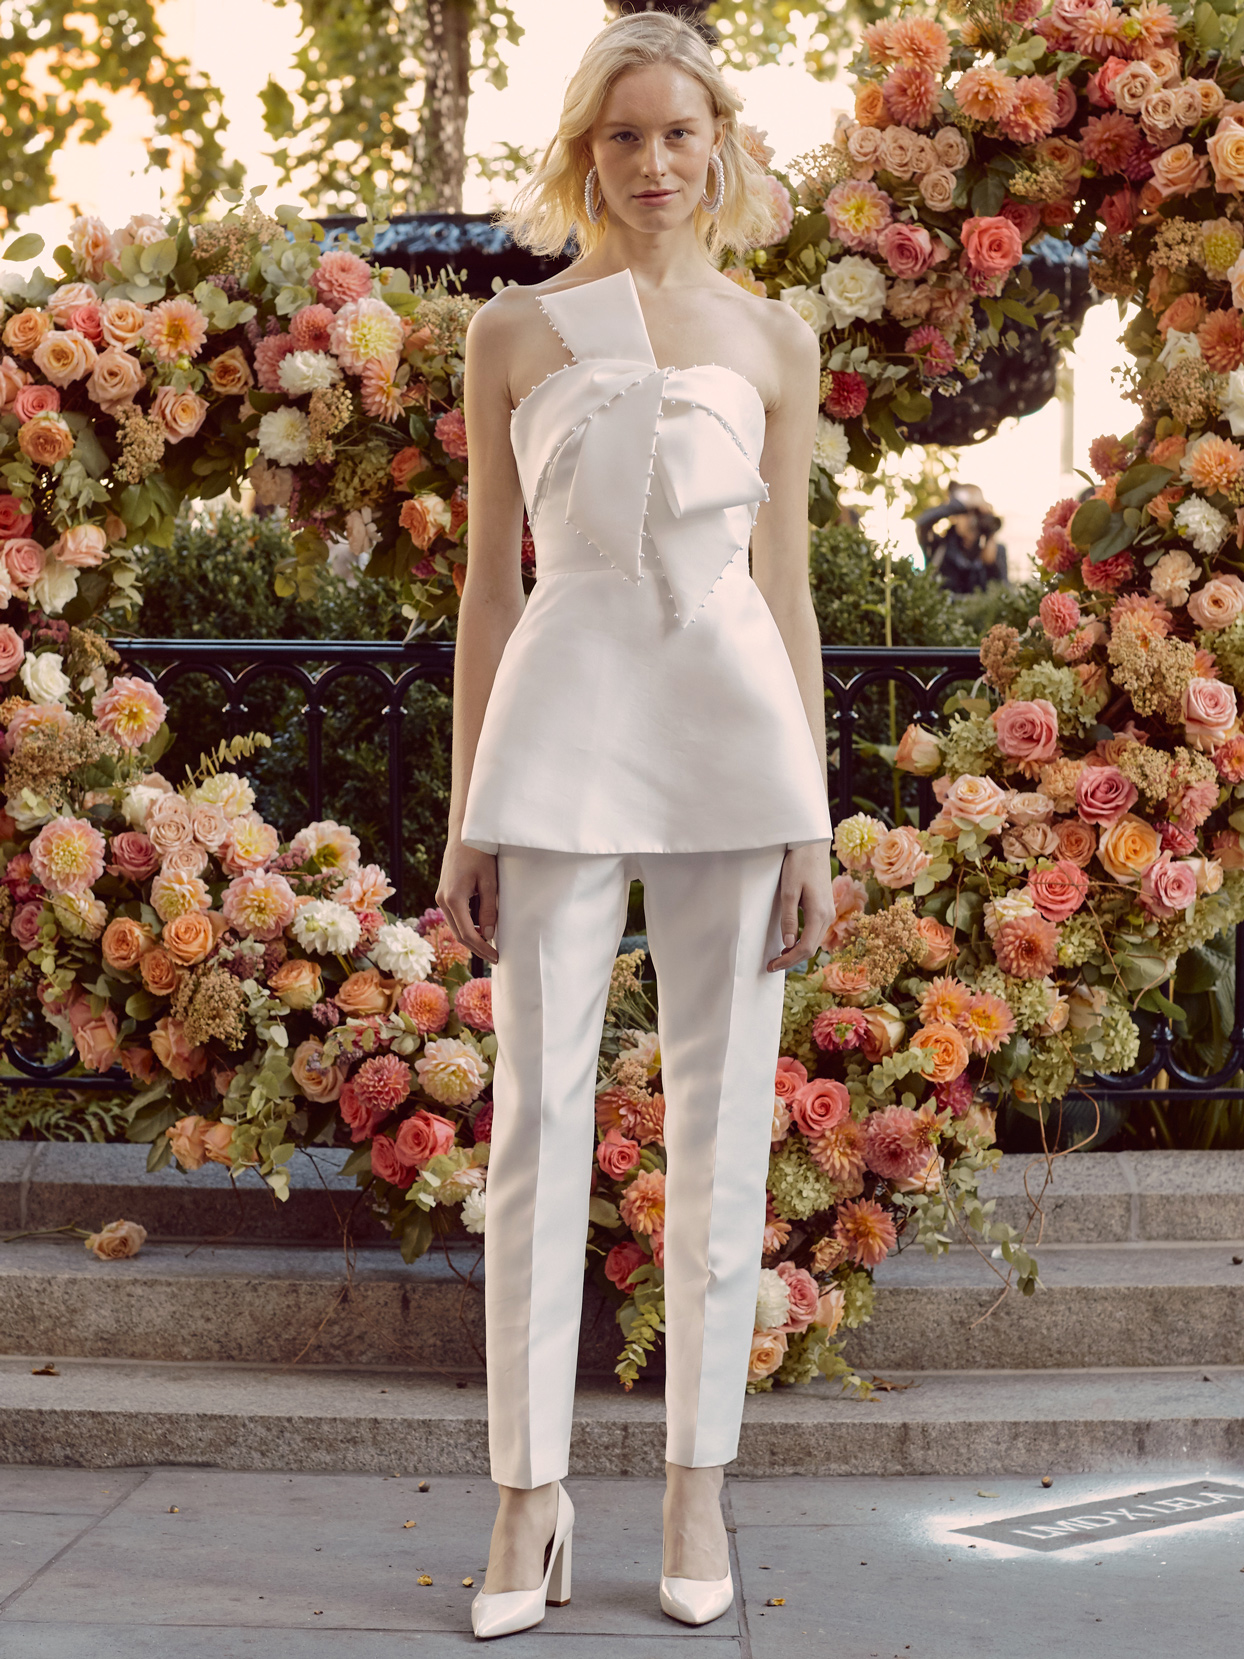 lela rose strapless top with beaded bow and pants wedding dress fall 2020